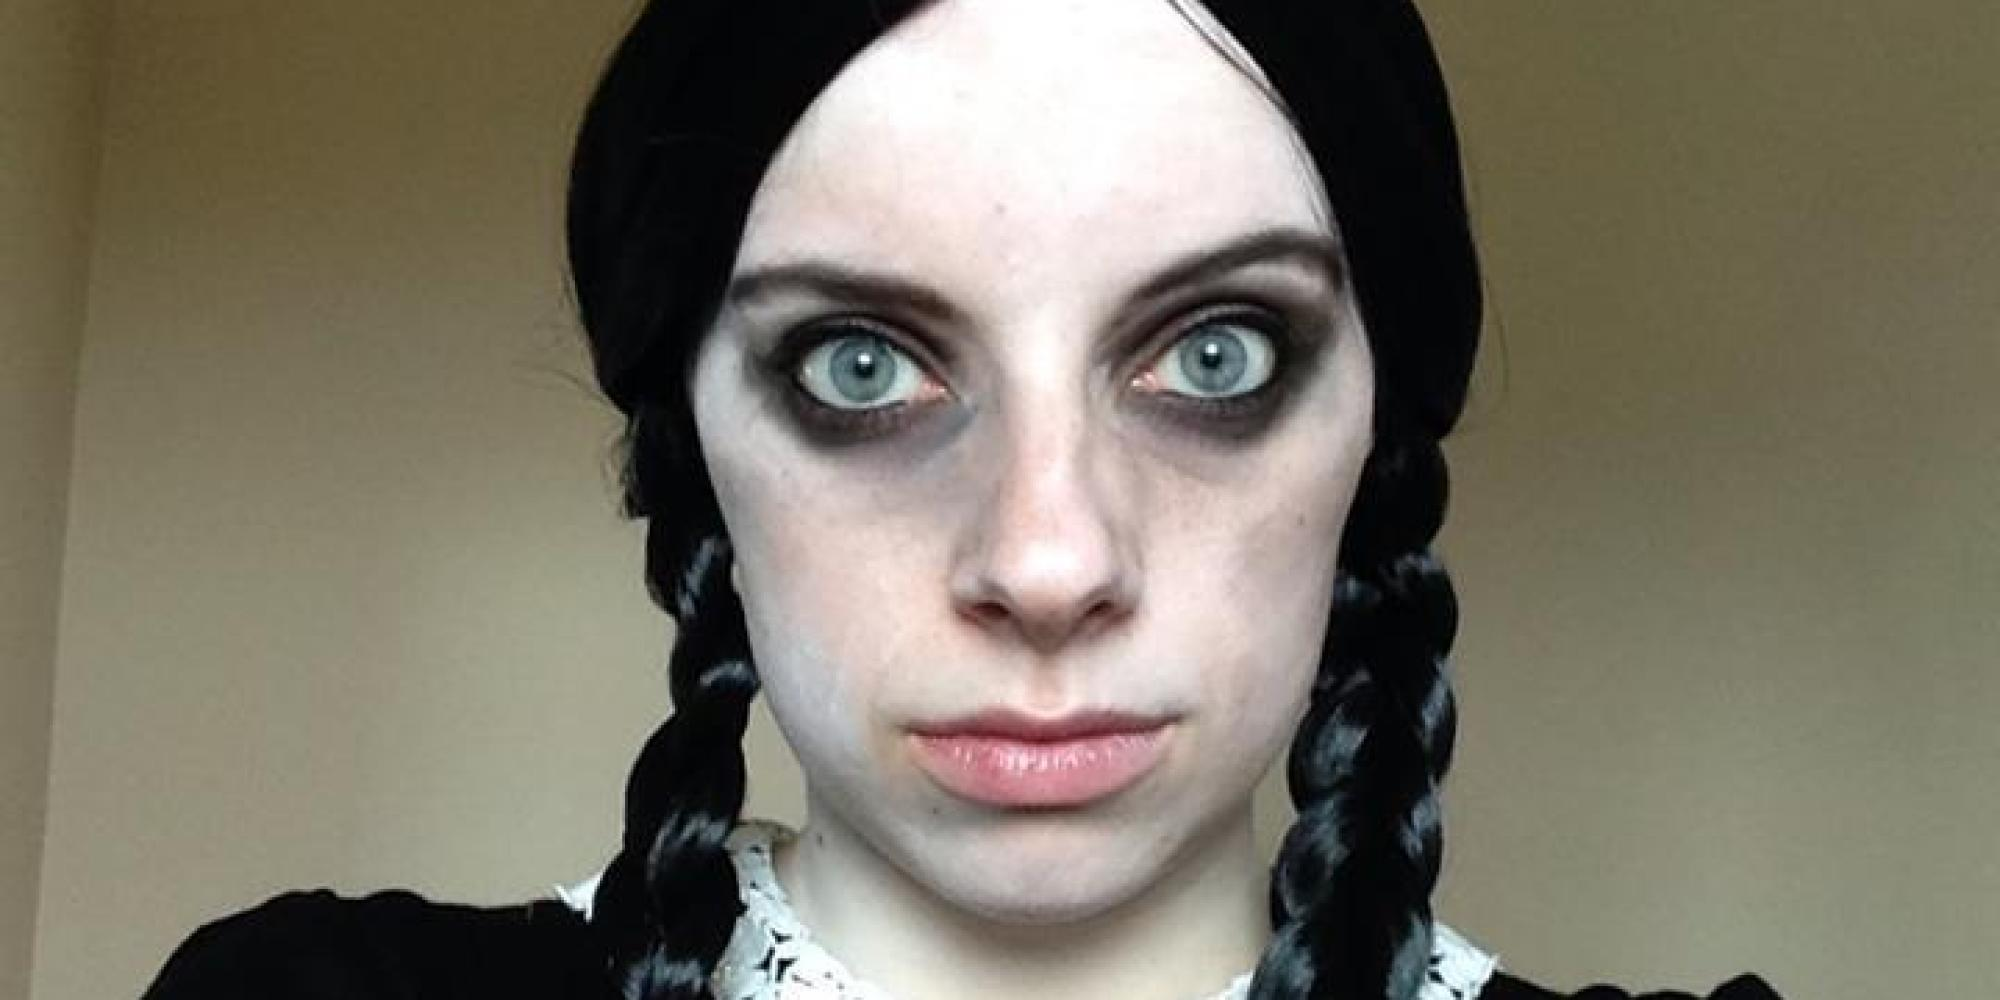 Wednesday Addams Makeup Diy - Mugeek Vidalondon